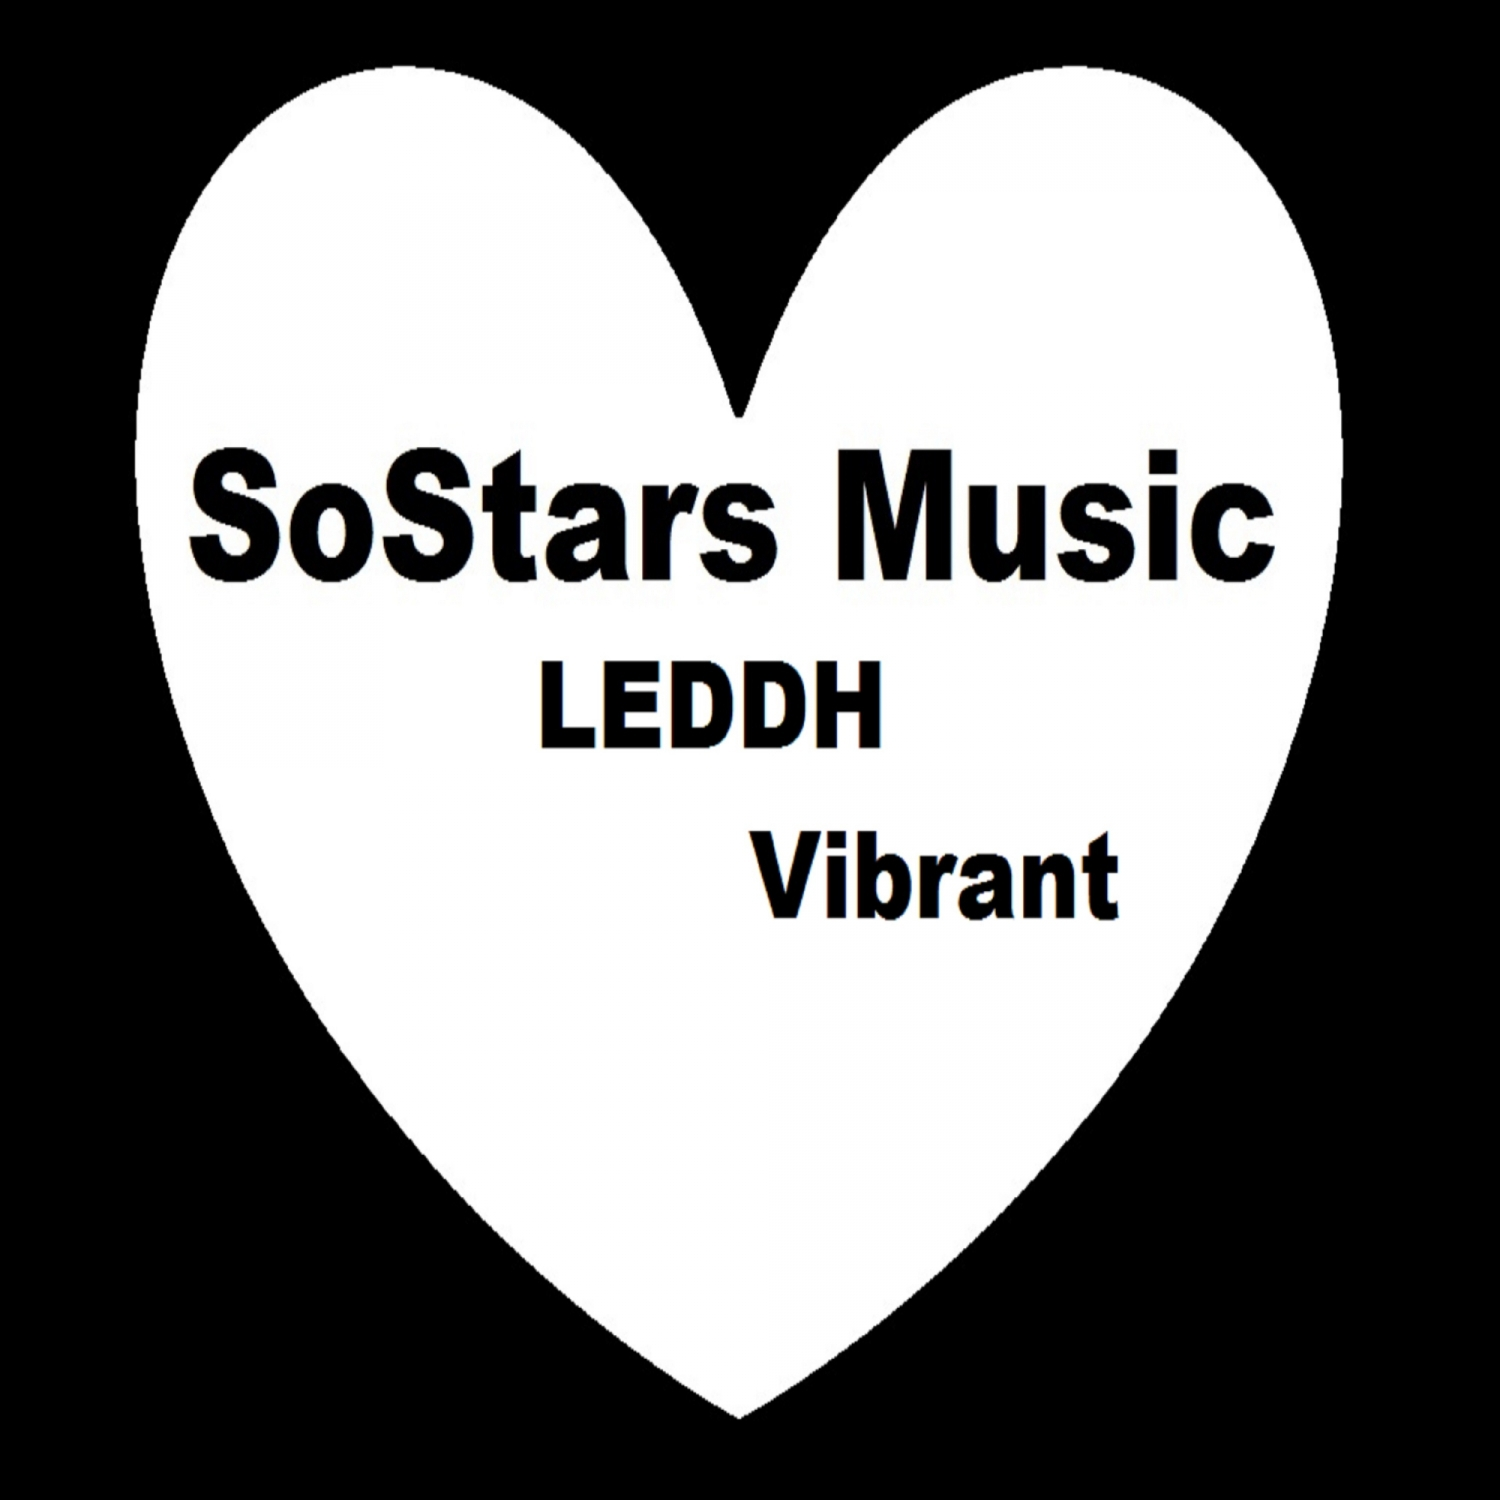 LEDDH - Vibrant (Original Mix)